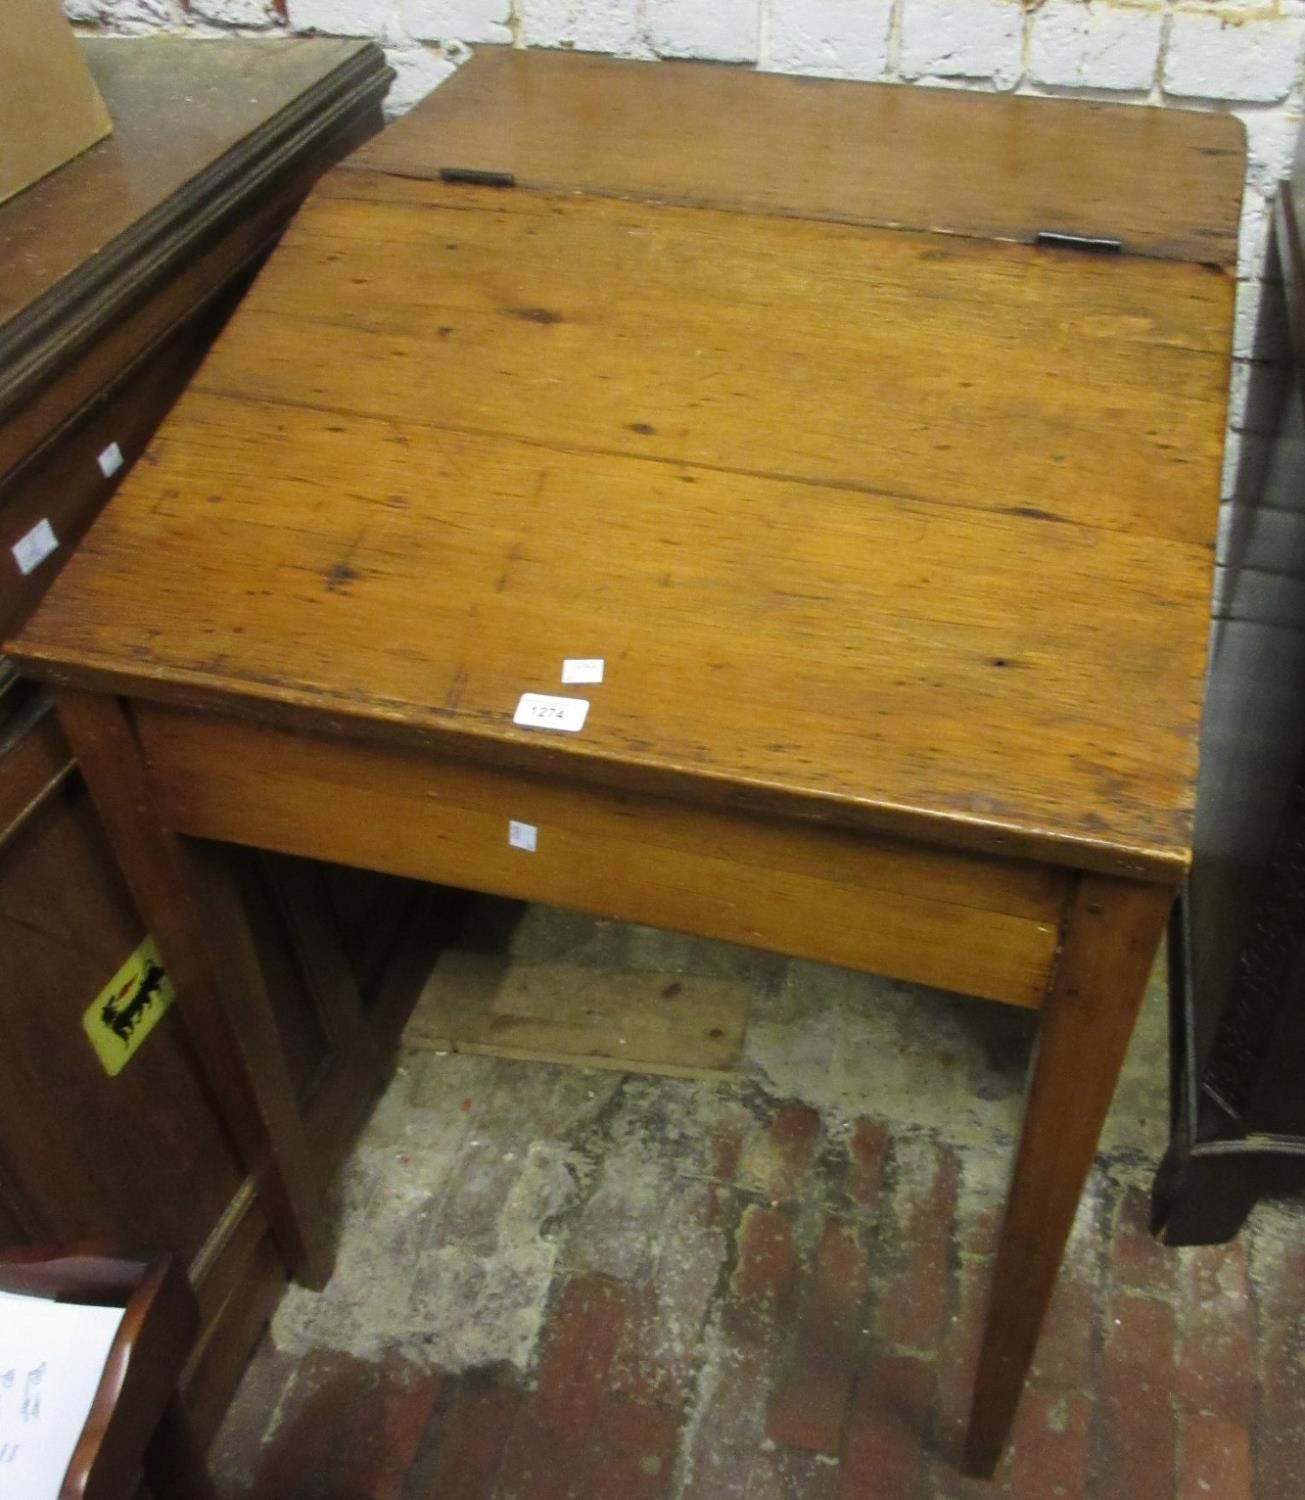 Polished pine clerk's desk with hinged top, raised on square tapering supports, 27ins wide x 31ins